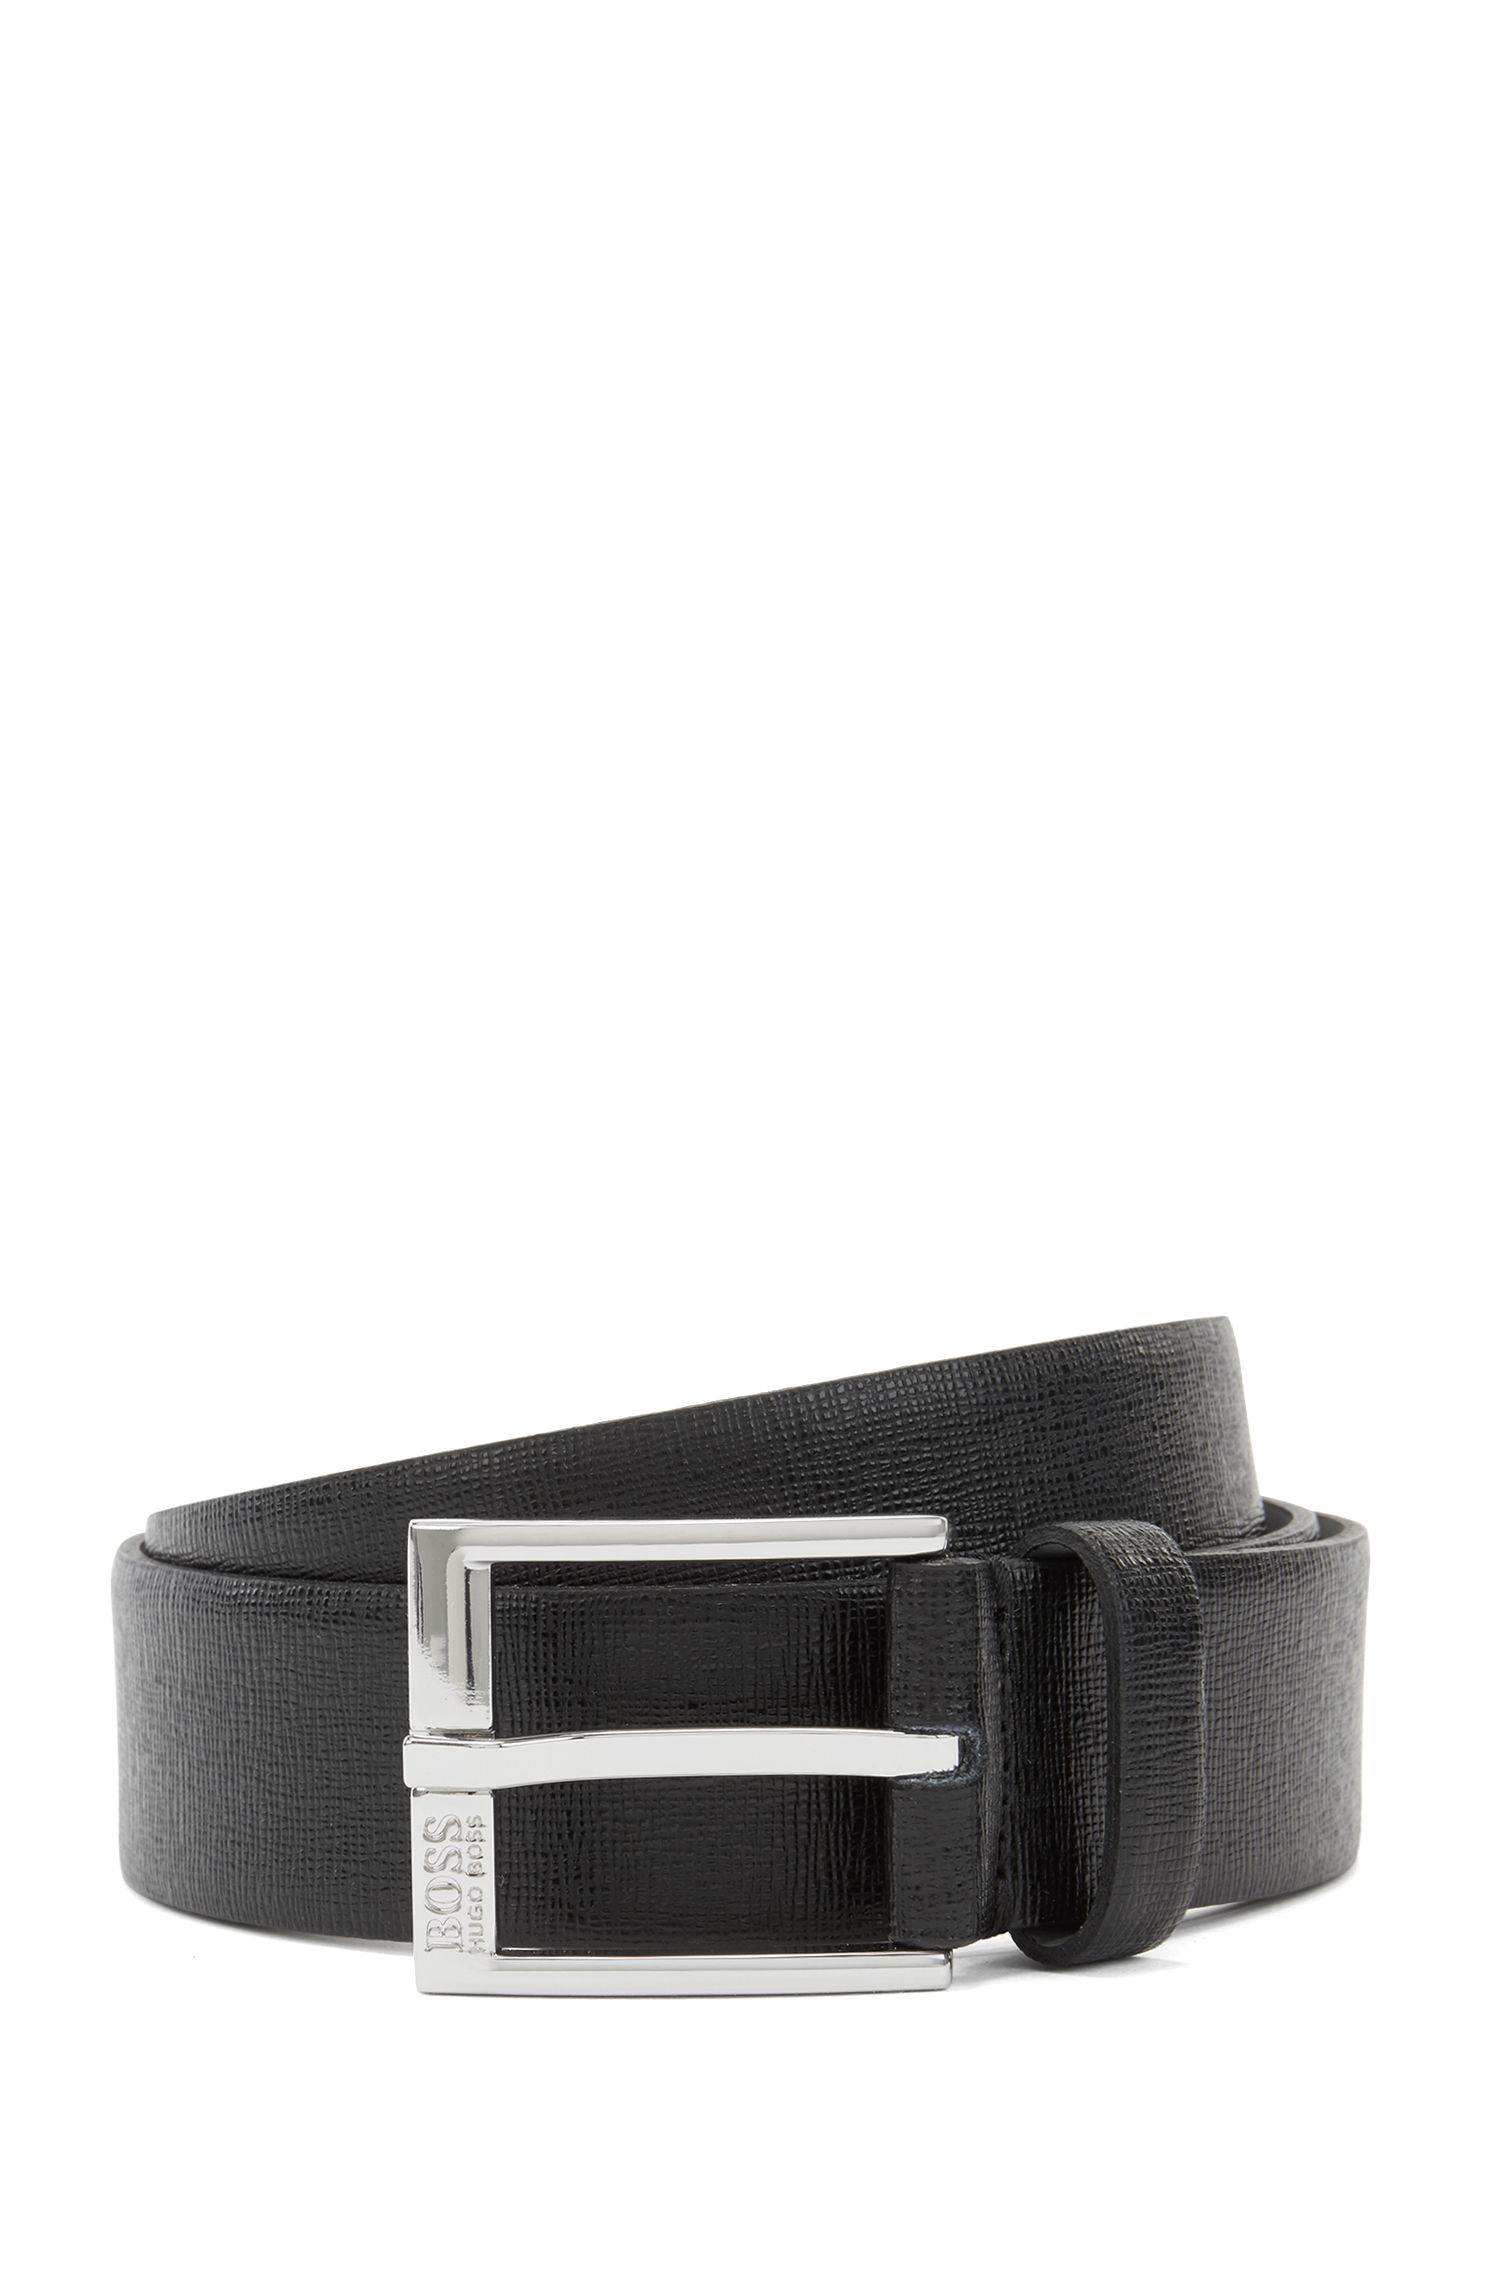 Palmellato-embossed leather belt with engraved buckle, Black